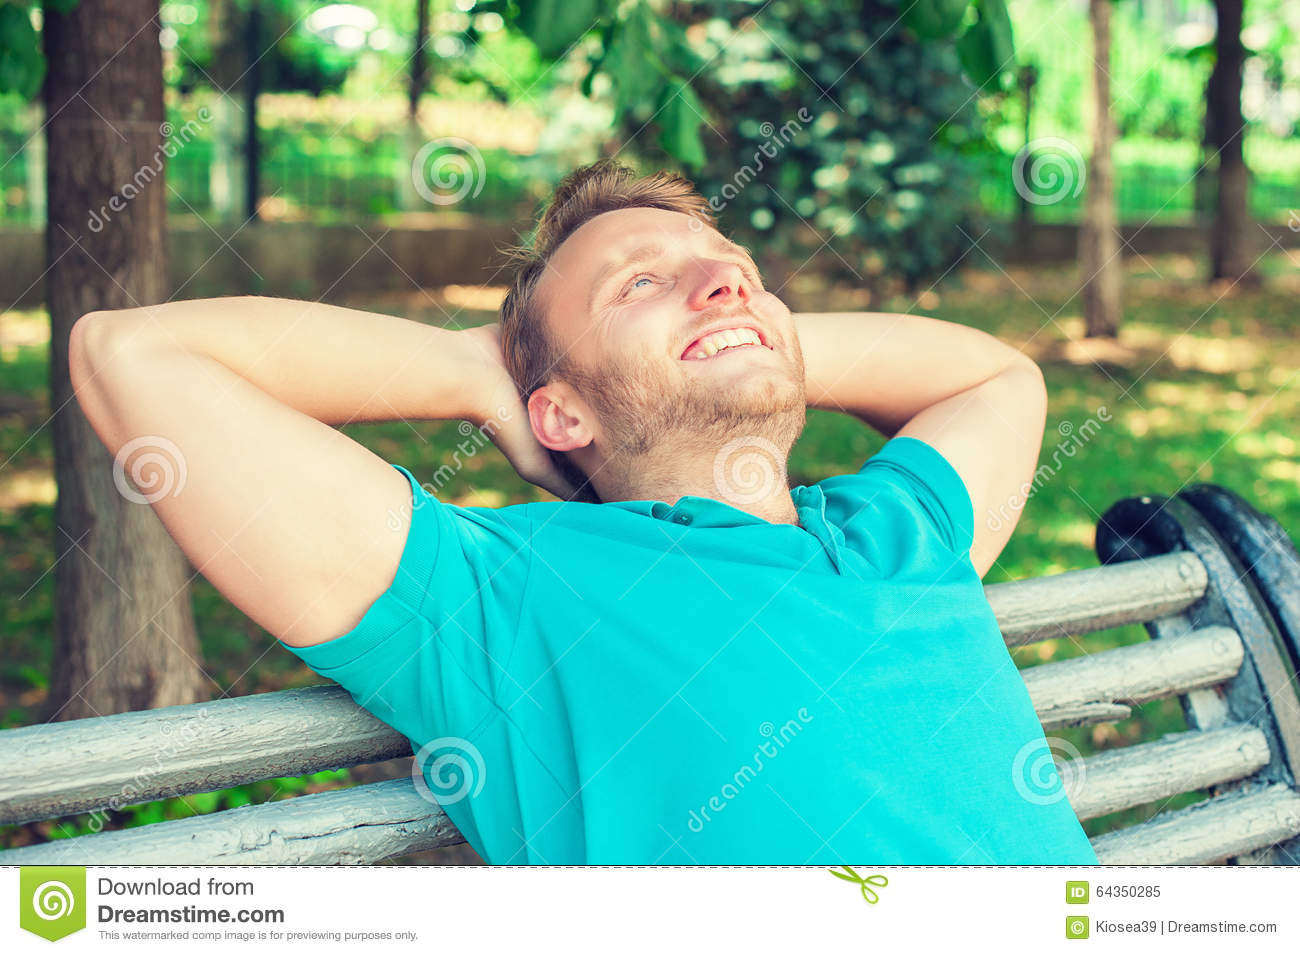 Happy handsome young man in shirt looking upwards in thought, relaxing on a bench